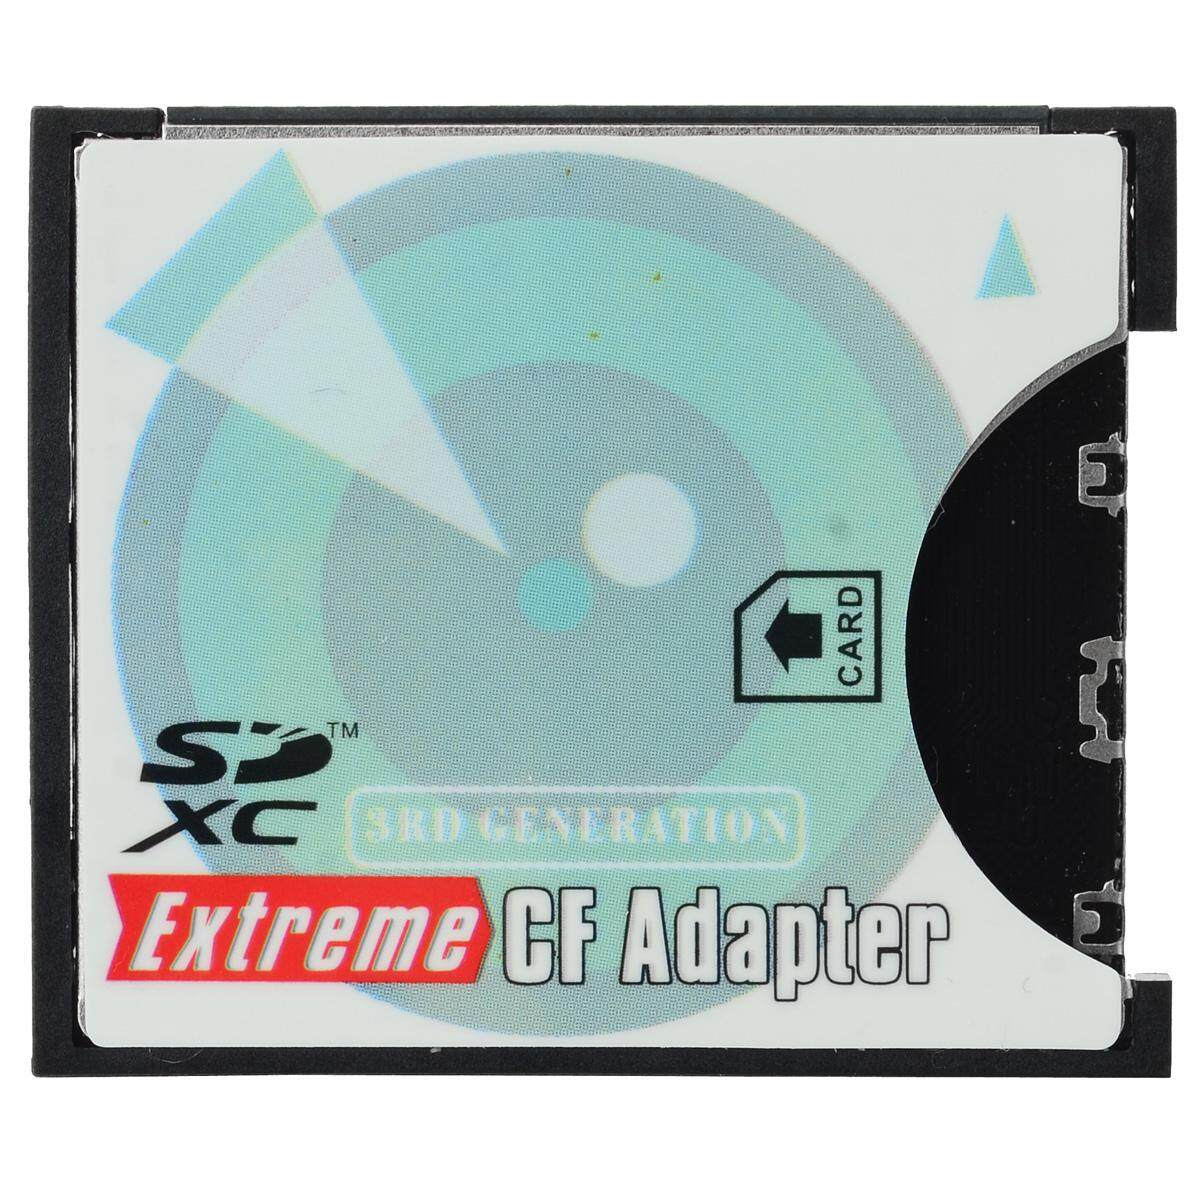 EP-025 SD SDHC SDXC to Extreme Compact Flash CF Type II Adapter - intl